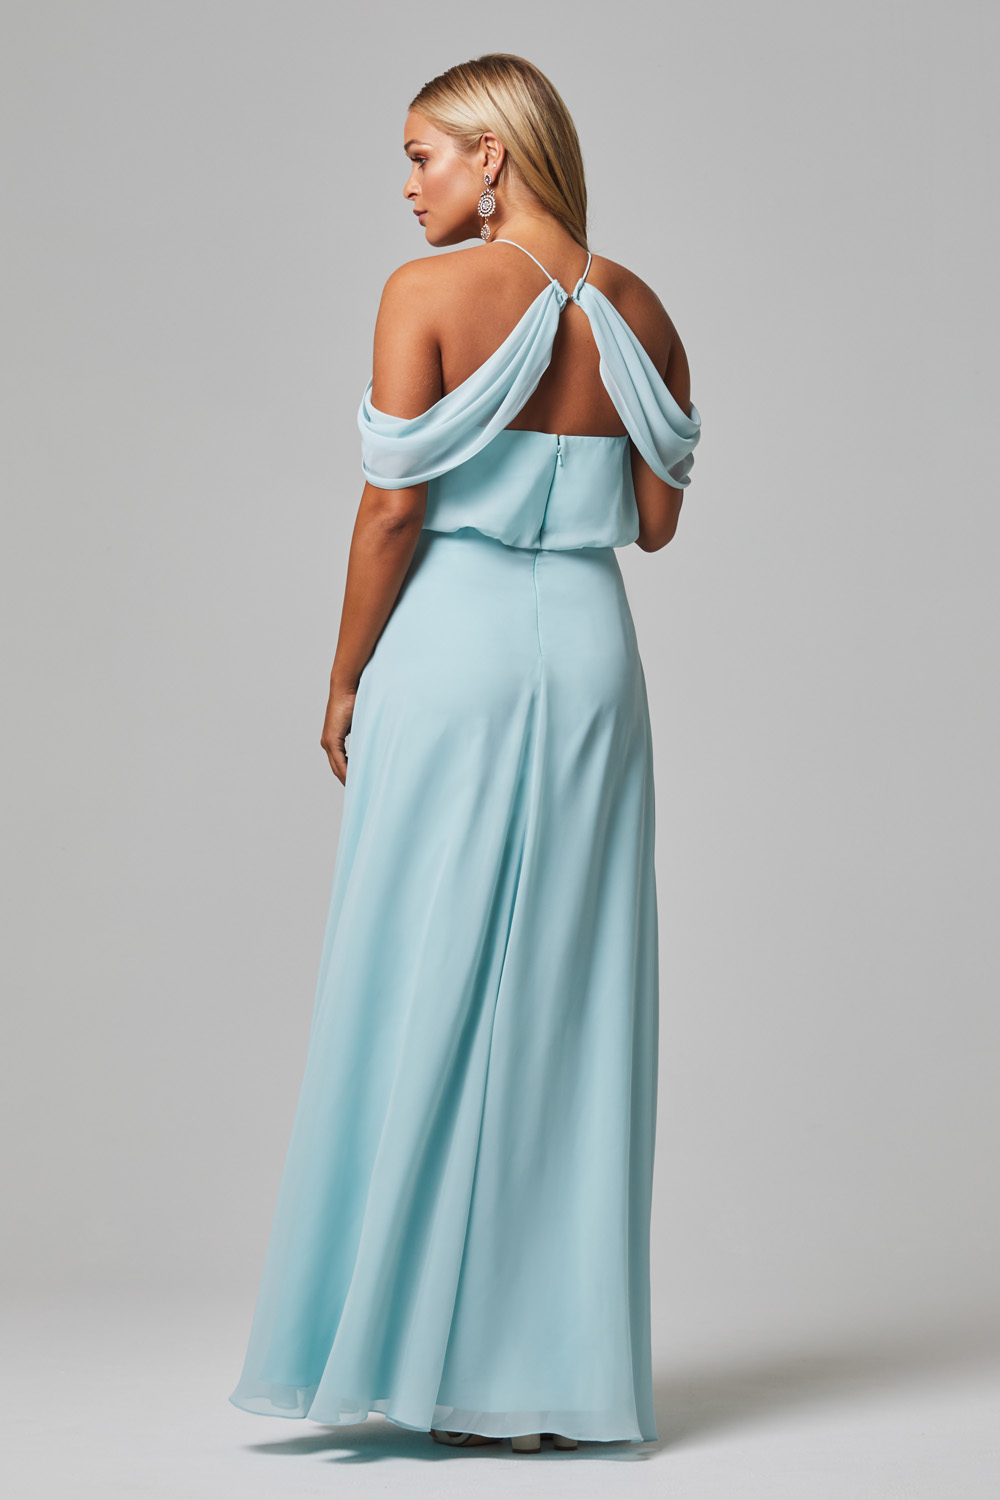 TO821-KASSIDY-PASTLE BLUE-BACK